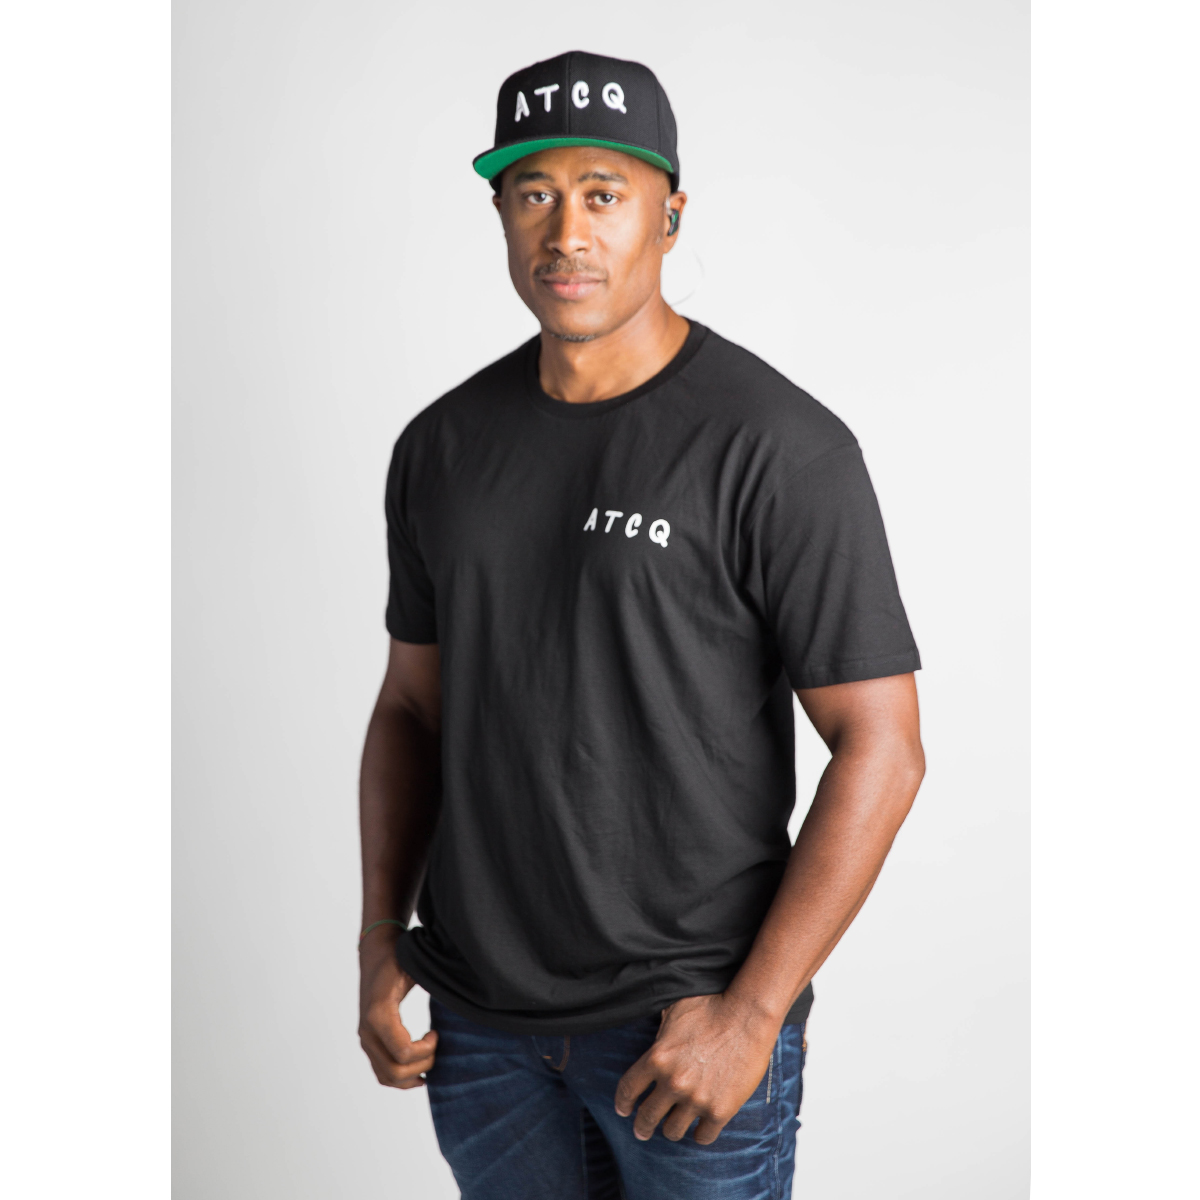 A Tribe Called Quest Thank You Tour T-shirt